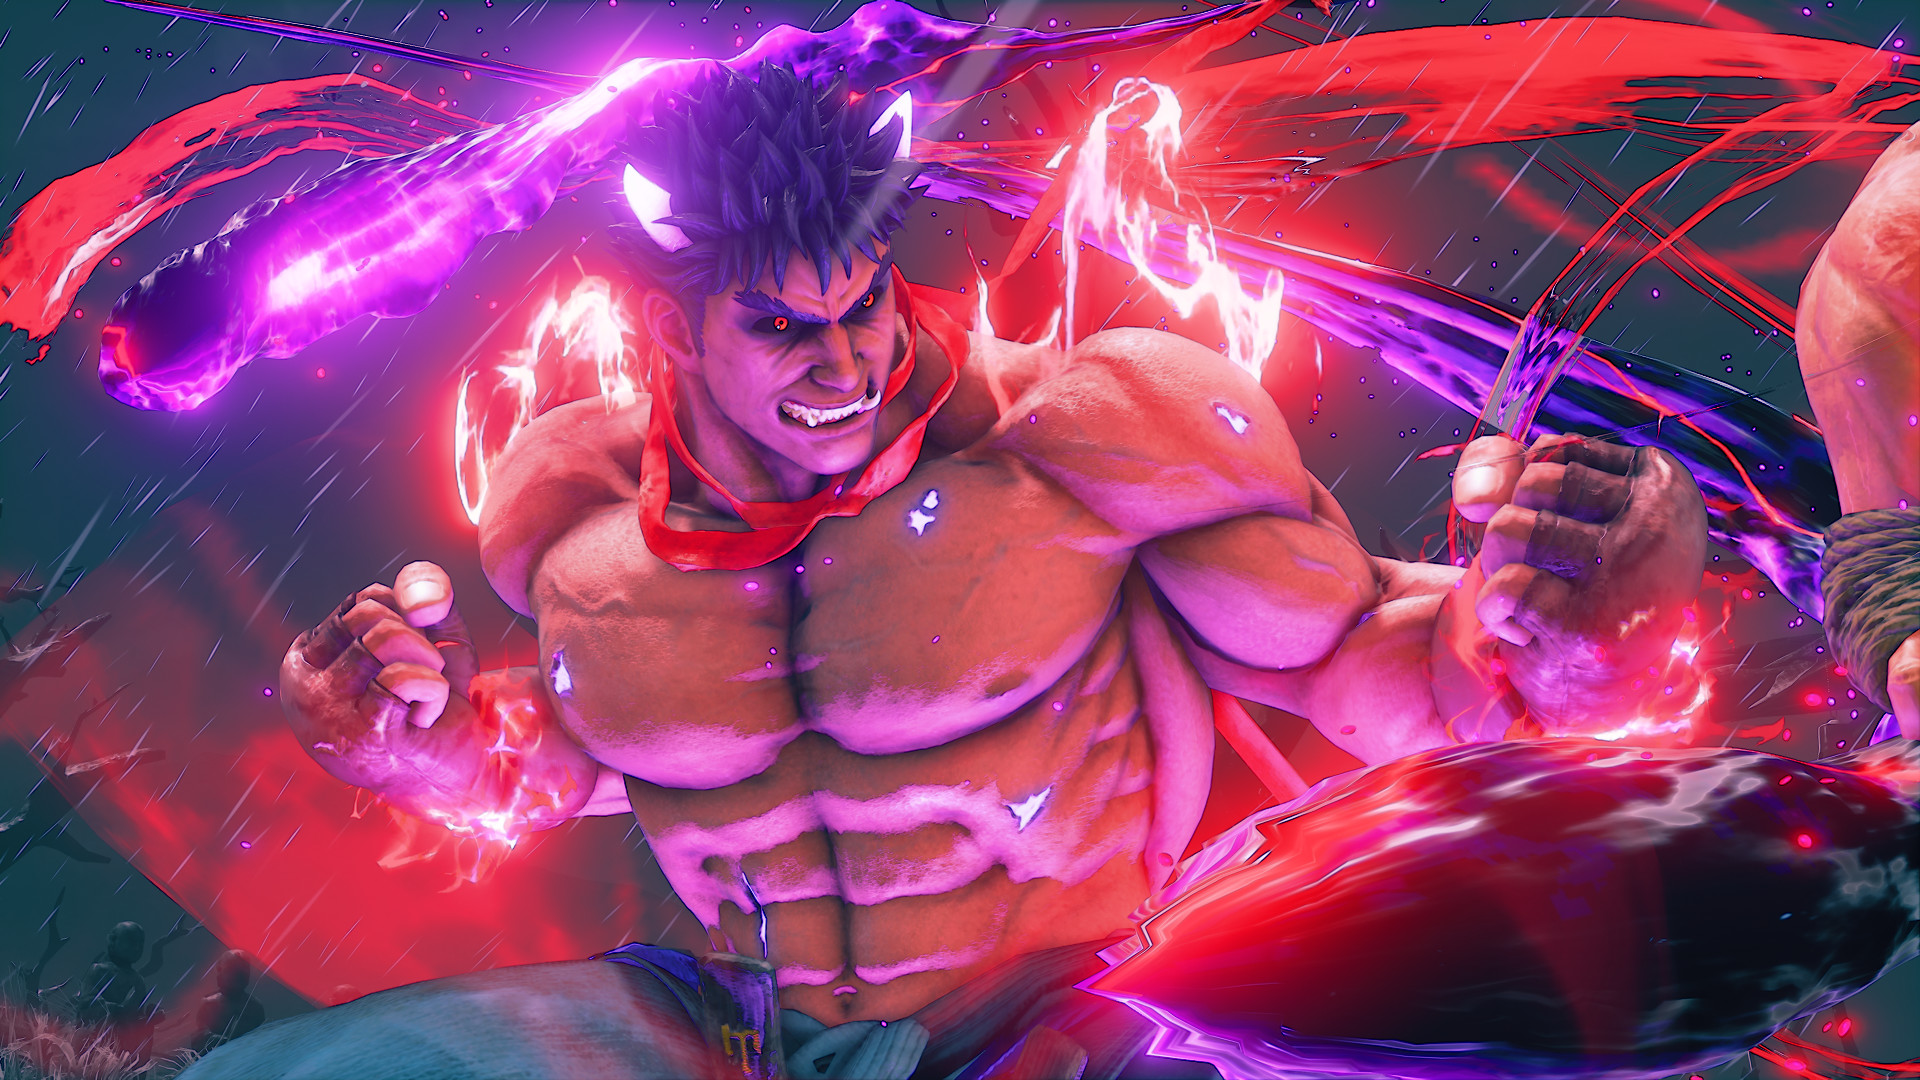 Res: 1920x1080, 'Evil Ryu' Kage Hits 'Street Fighter V: Arcade Edition' Monday